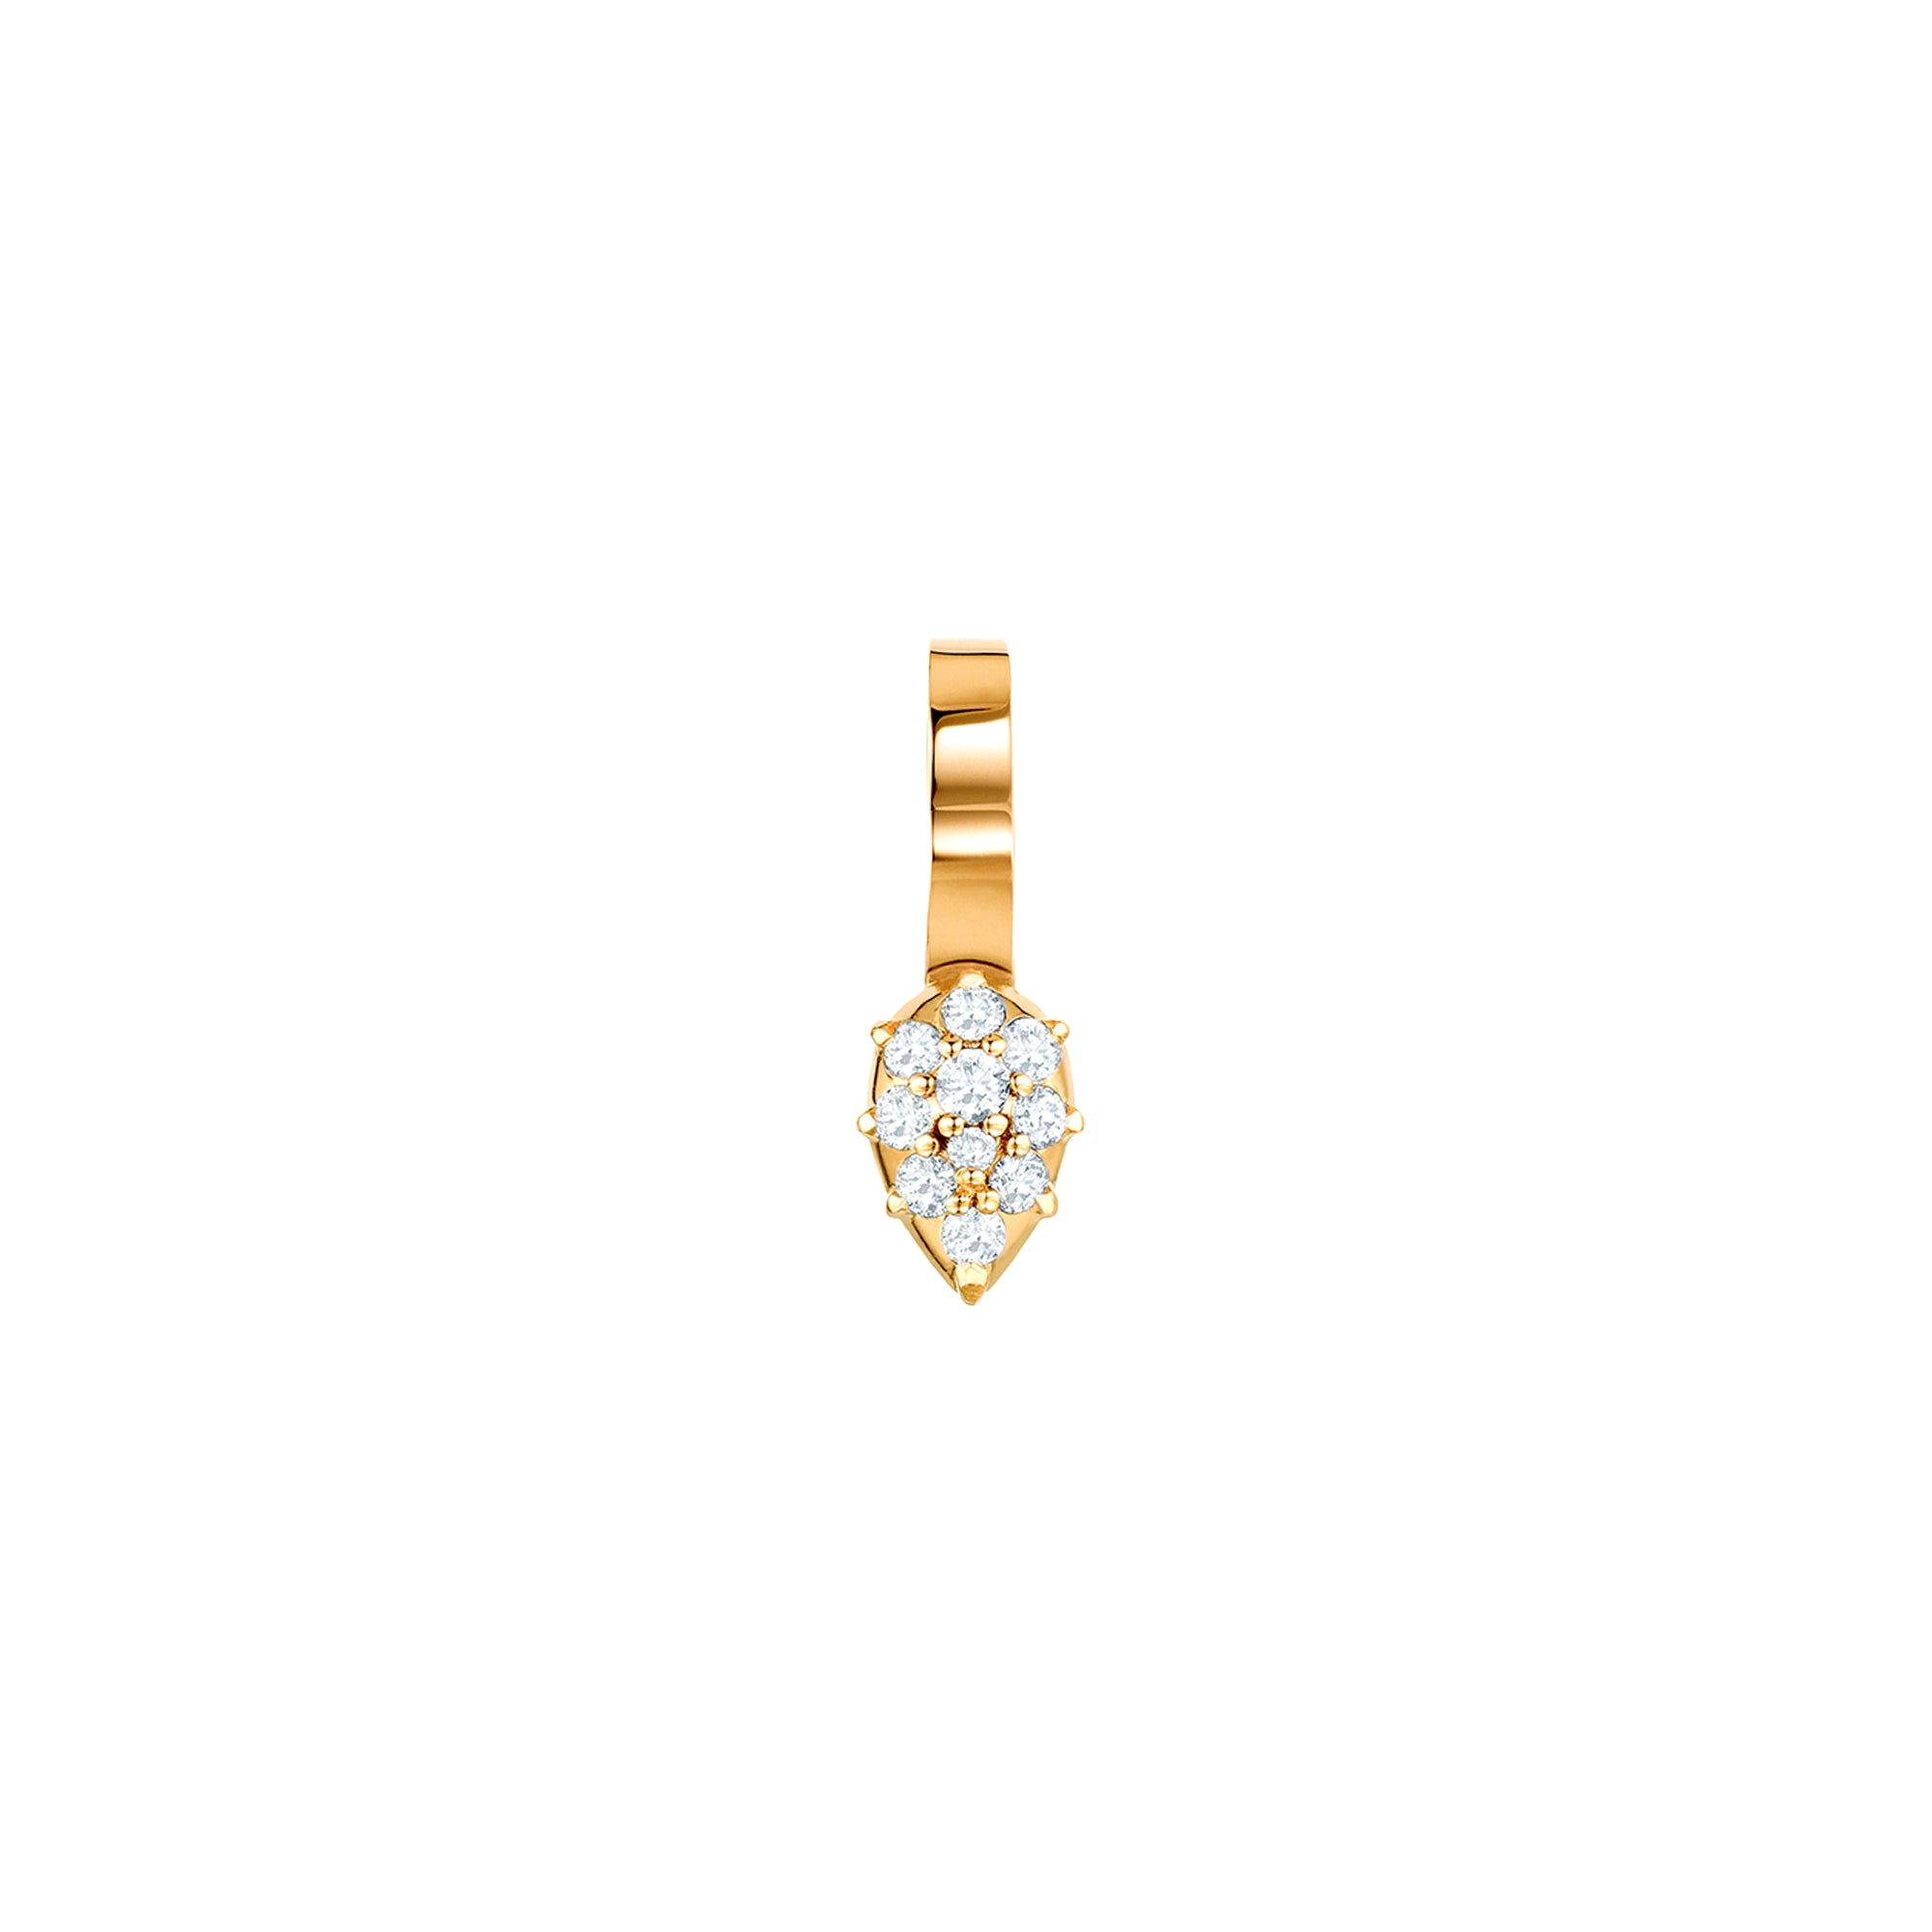 Gold & White Diamond Arya Earcuff by Carbon & Hyde for Broken English Jewelry